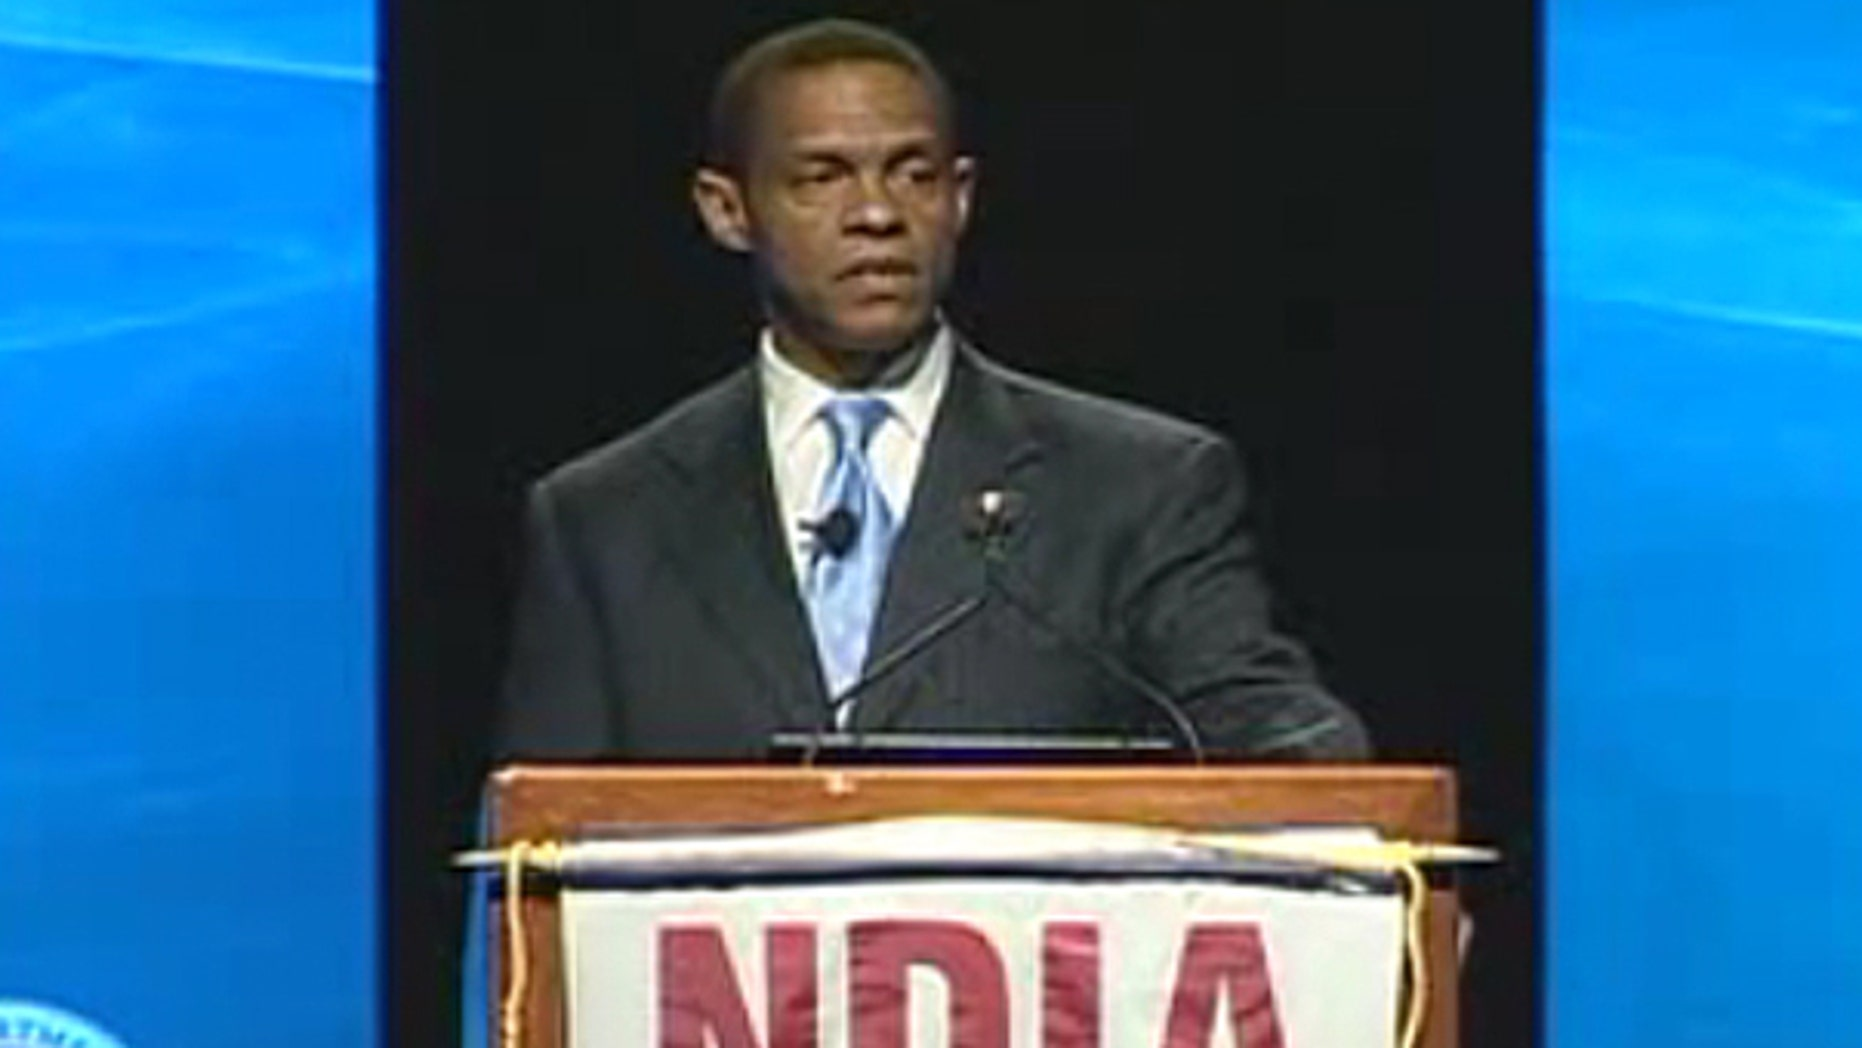 TSA Administrator Nominee Erroll Southers is shown here addressing a Department of Homeland Security conference in April 2008. (DHS)